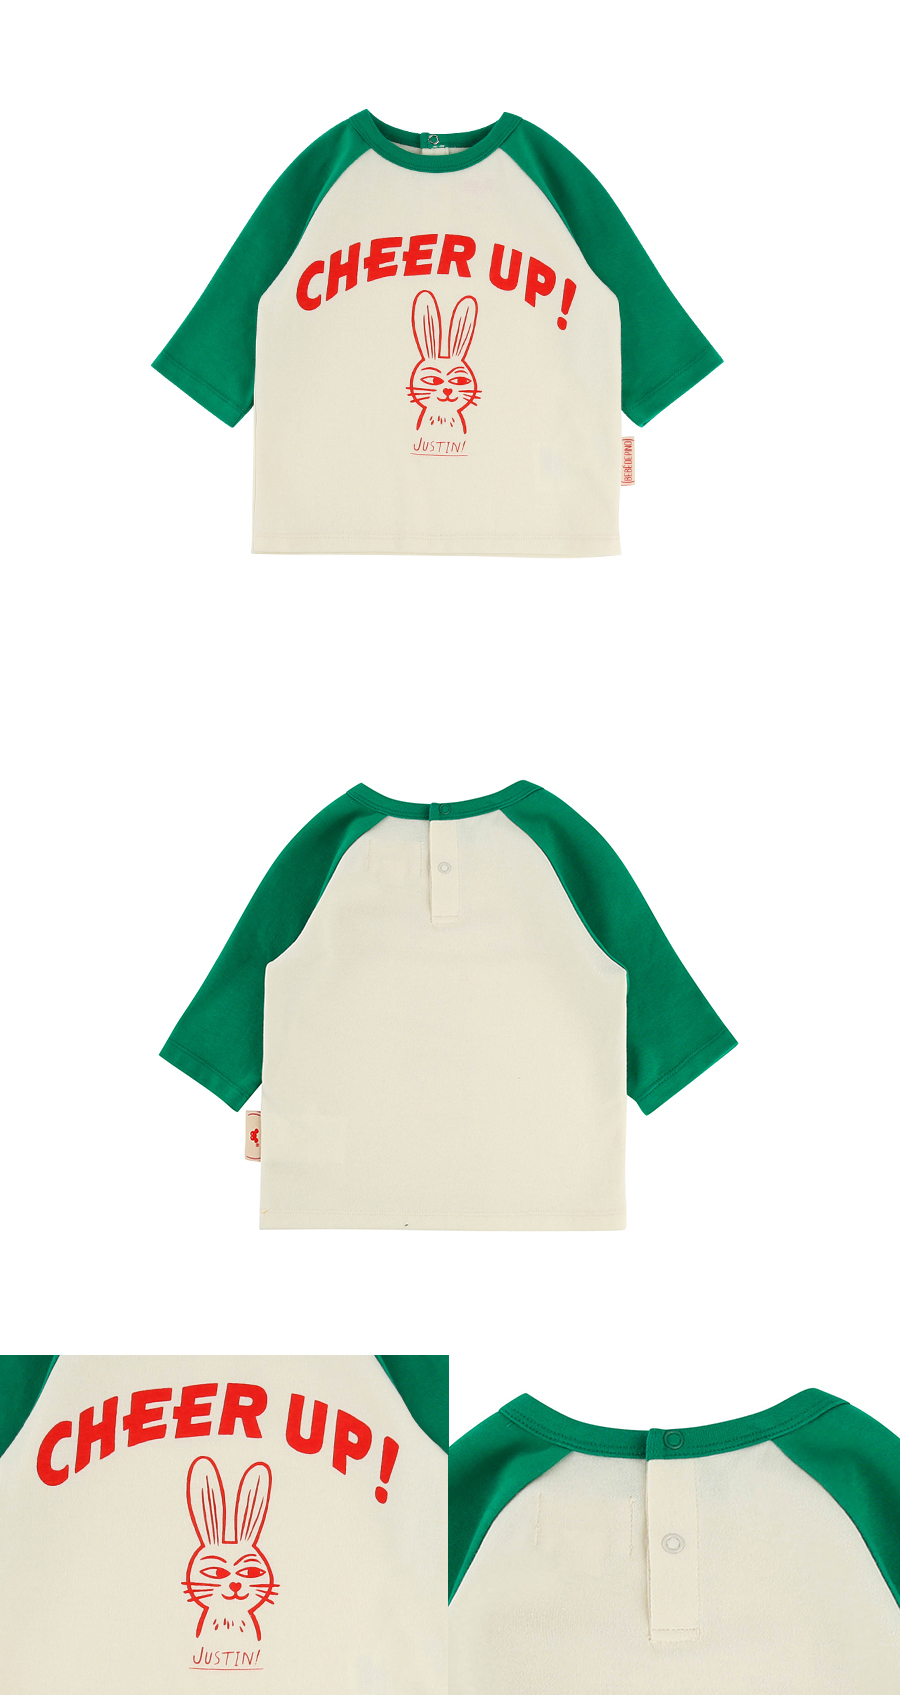 Cheer up baby color block three-quarter tee 상세 이미지